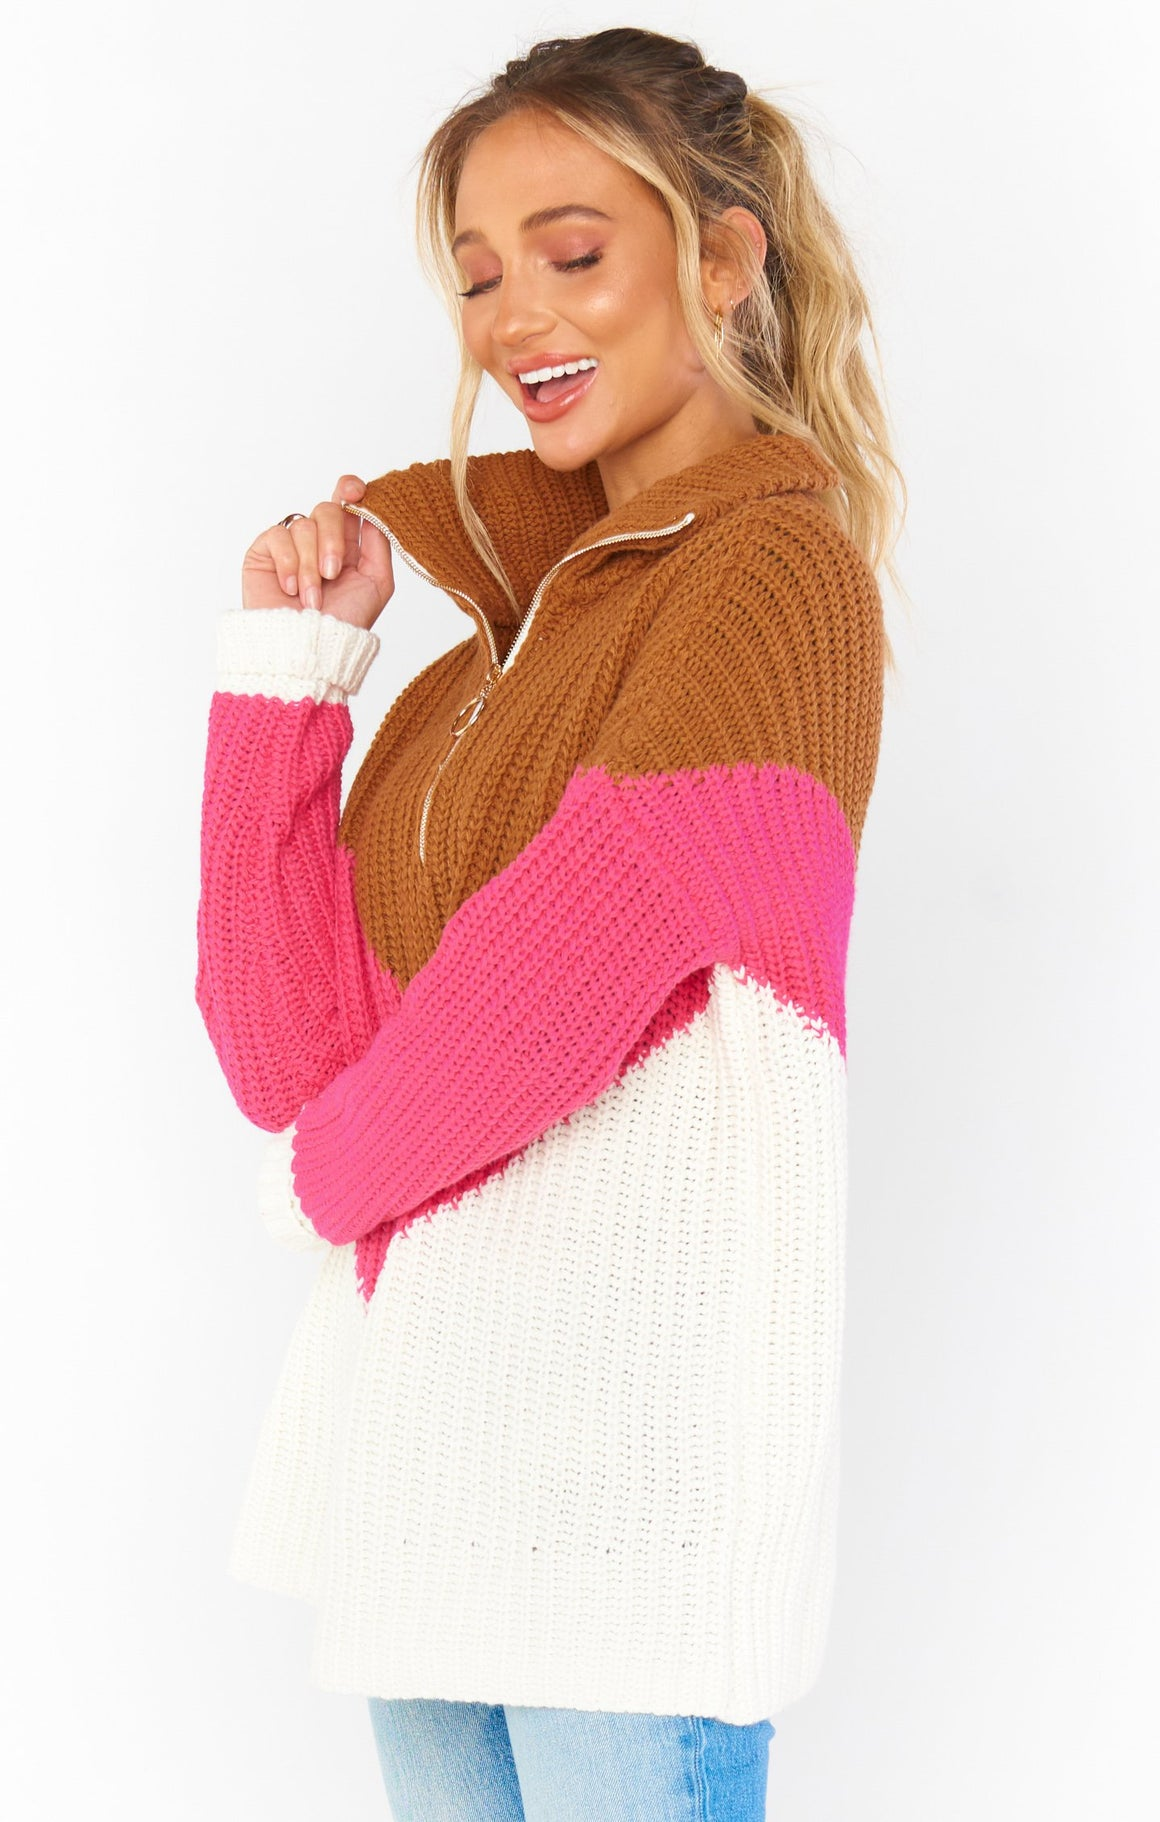 Weston Half Zip Pullover Sweater-Sweaters-Show Me Your Mumu-Max & Riley